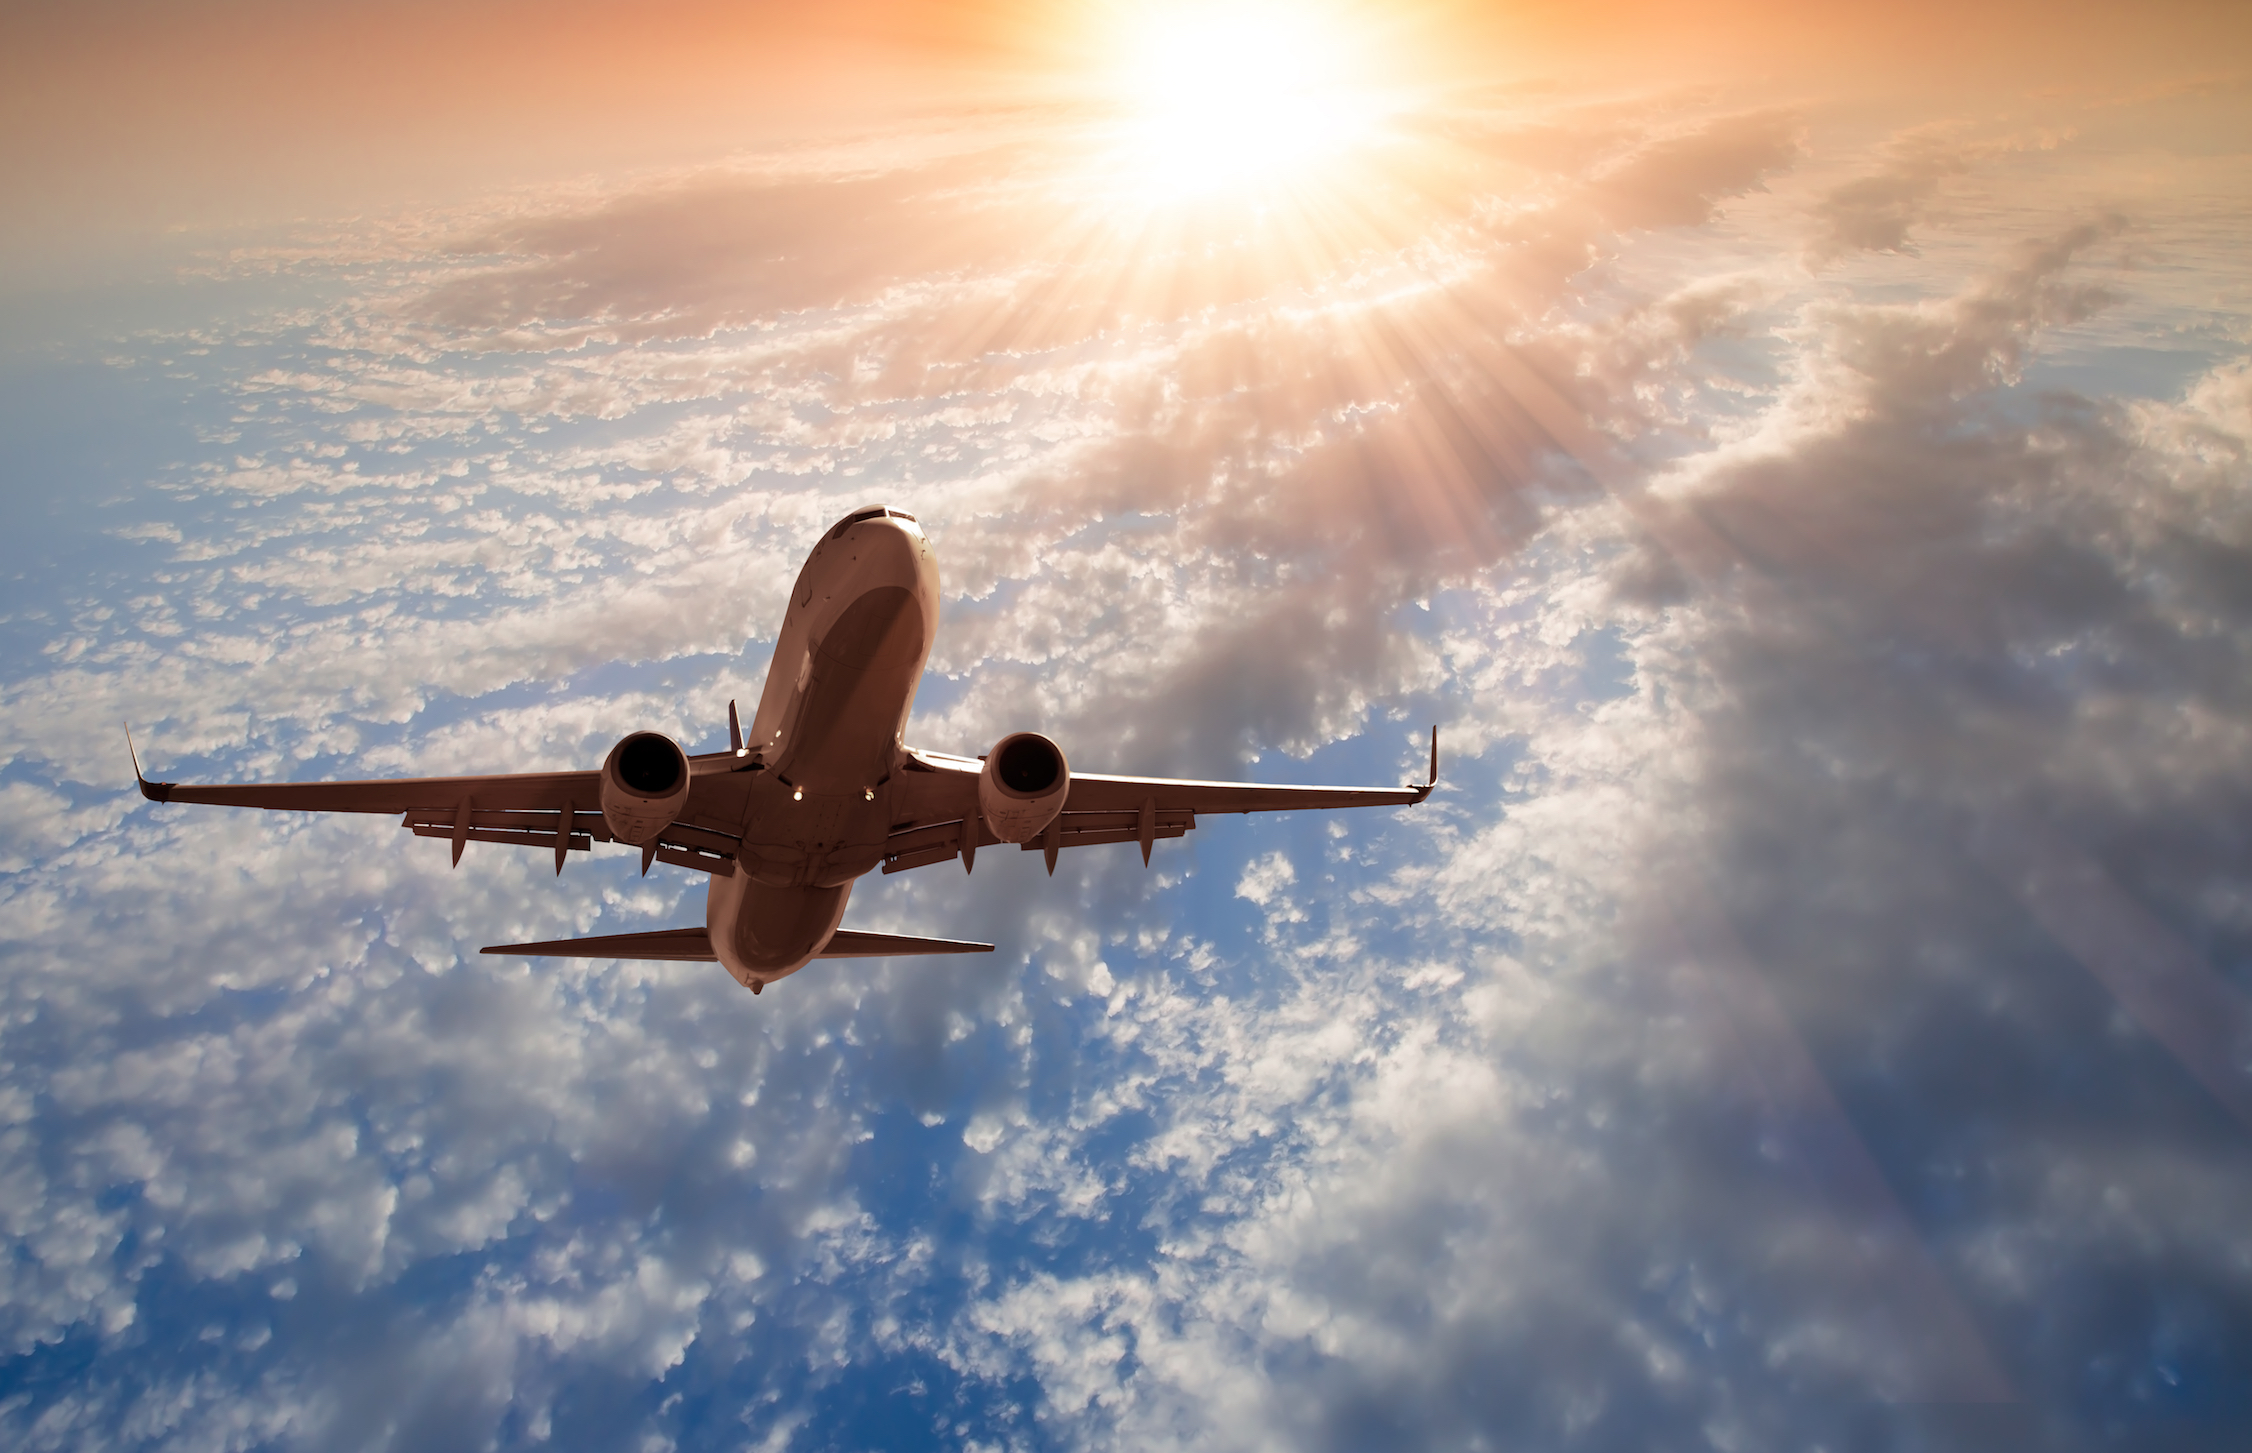 New research suggests that aircraft turbulence may become two or three times more frequent due to increases in climate change.